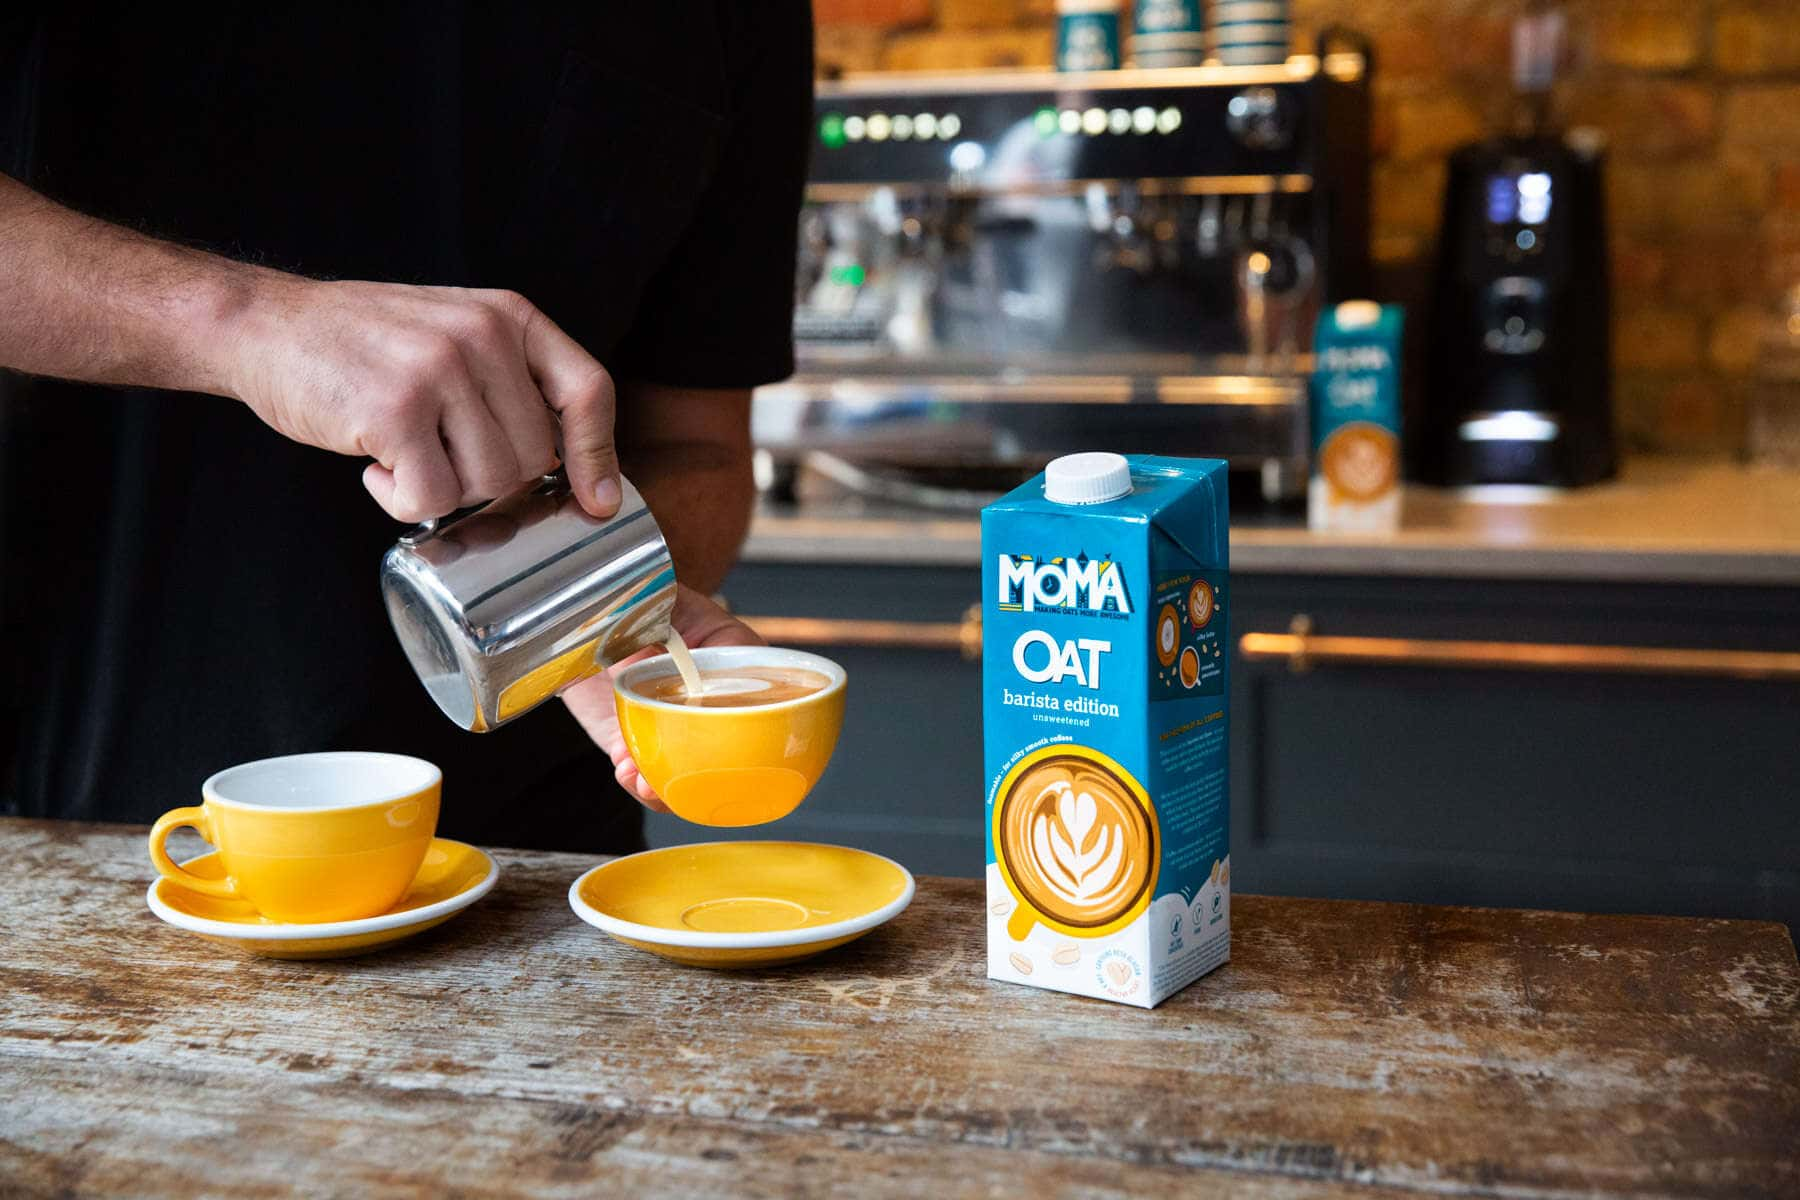 Moma barista oat milk being poured in front of a coffee machine in a cafe